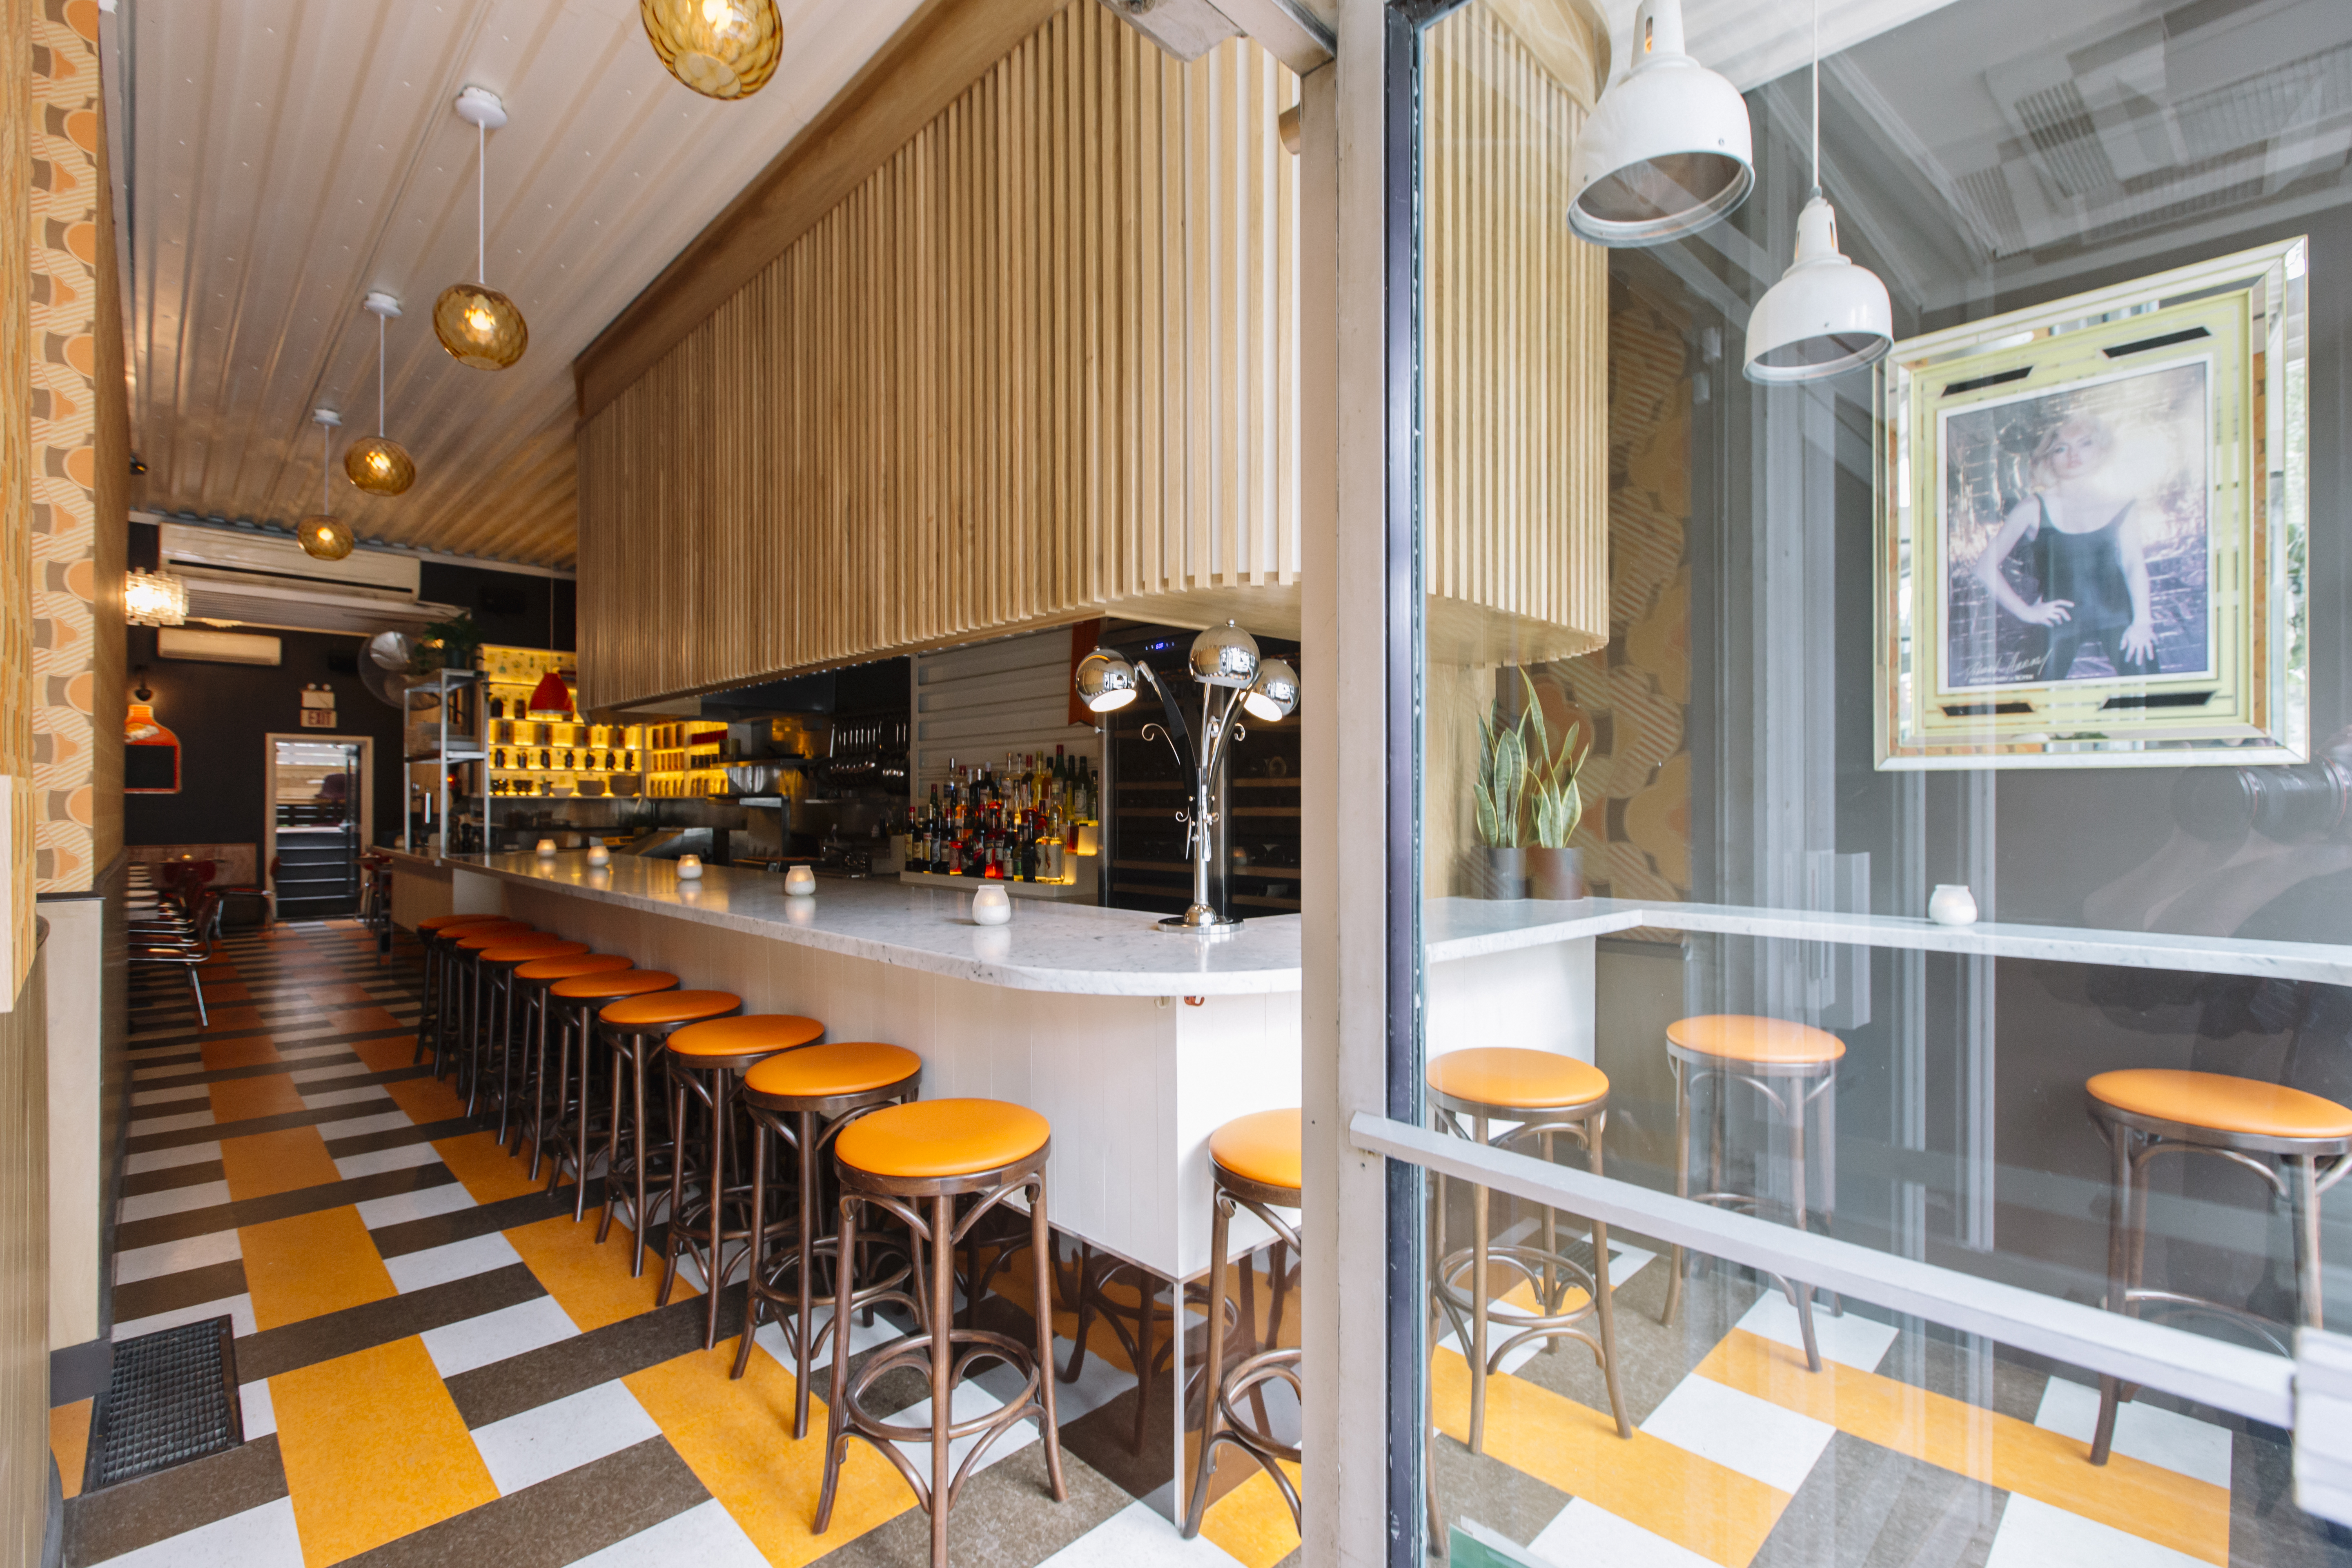 A view into a restaurant space from an open front door include orange, white, and black linoleum floors and a long bar with orange-cushioned stools